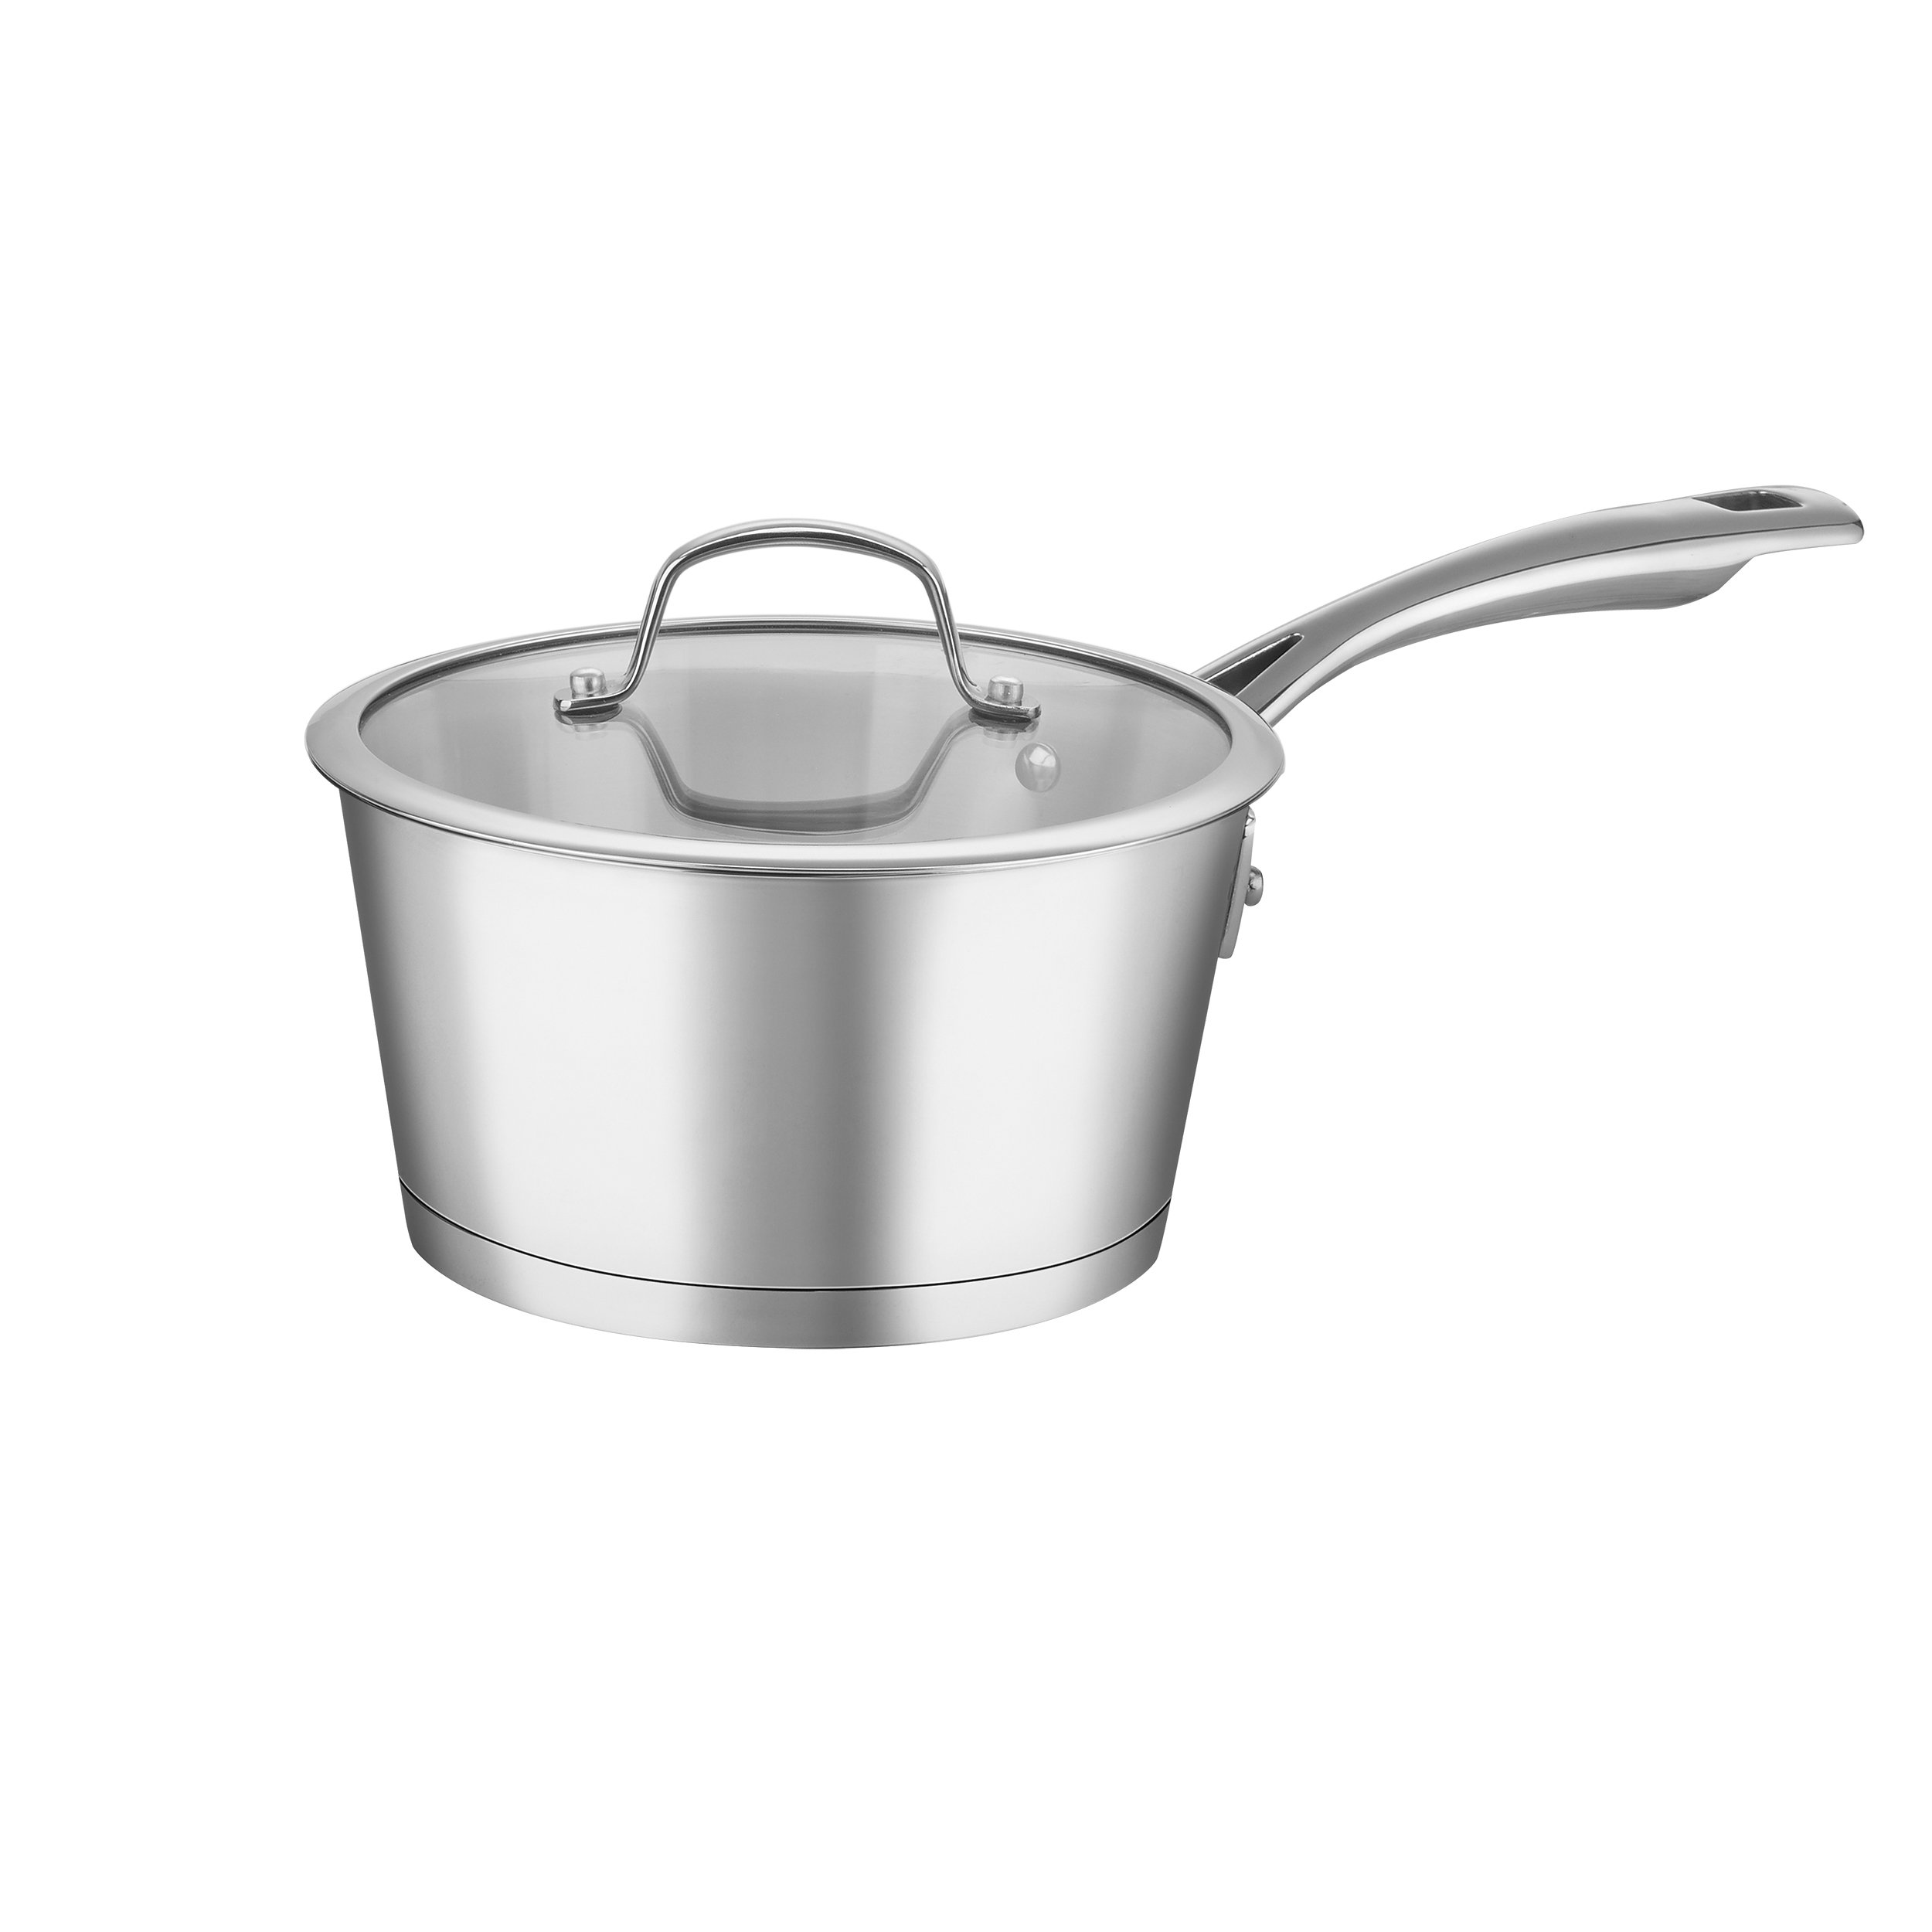 Cuisinart 72I192-18 Conical Saucepan with Cover, Medium, Stainless Steel